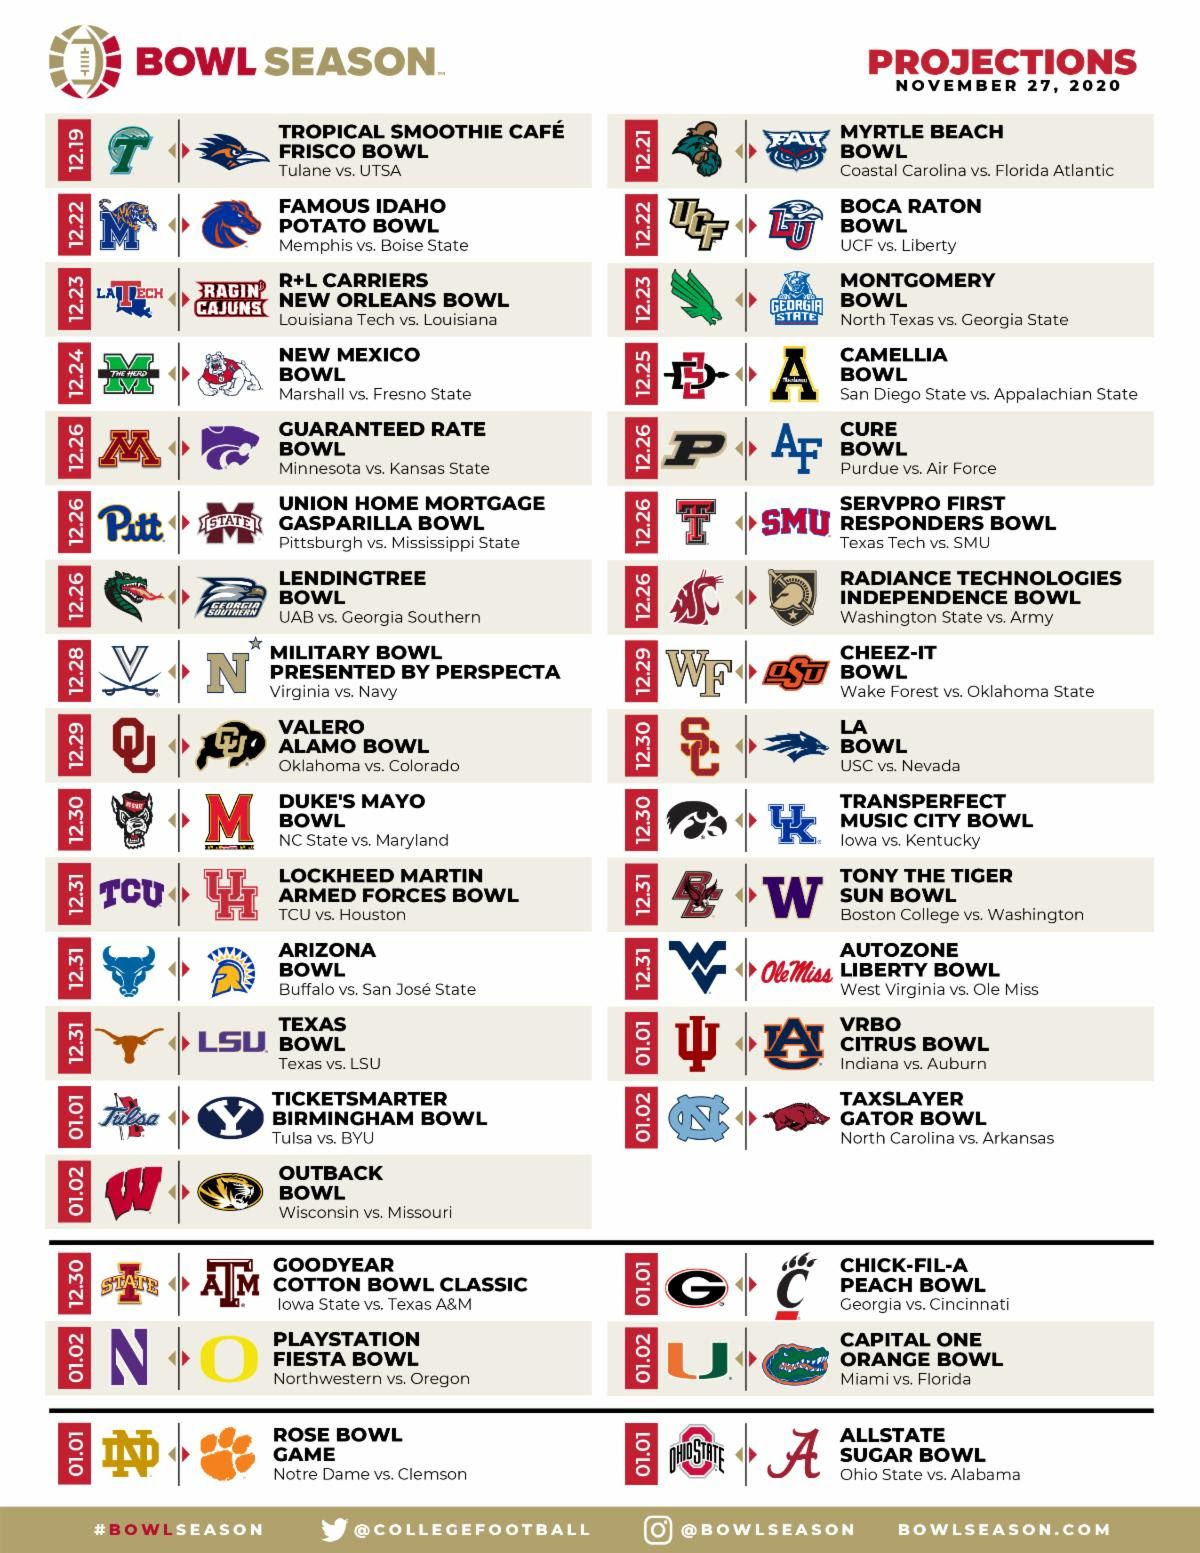 Projected match-ups for the upcoming bowl season, per BowlSeason.com (as of Nov. 27, 2020)